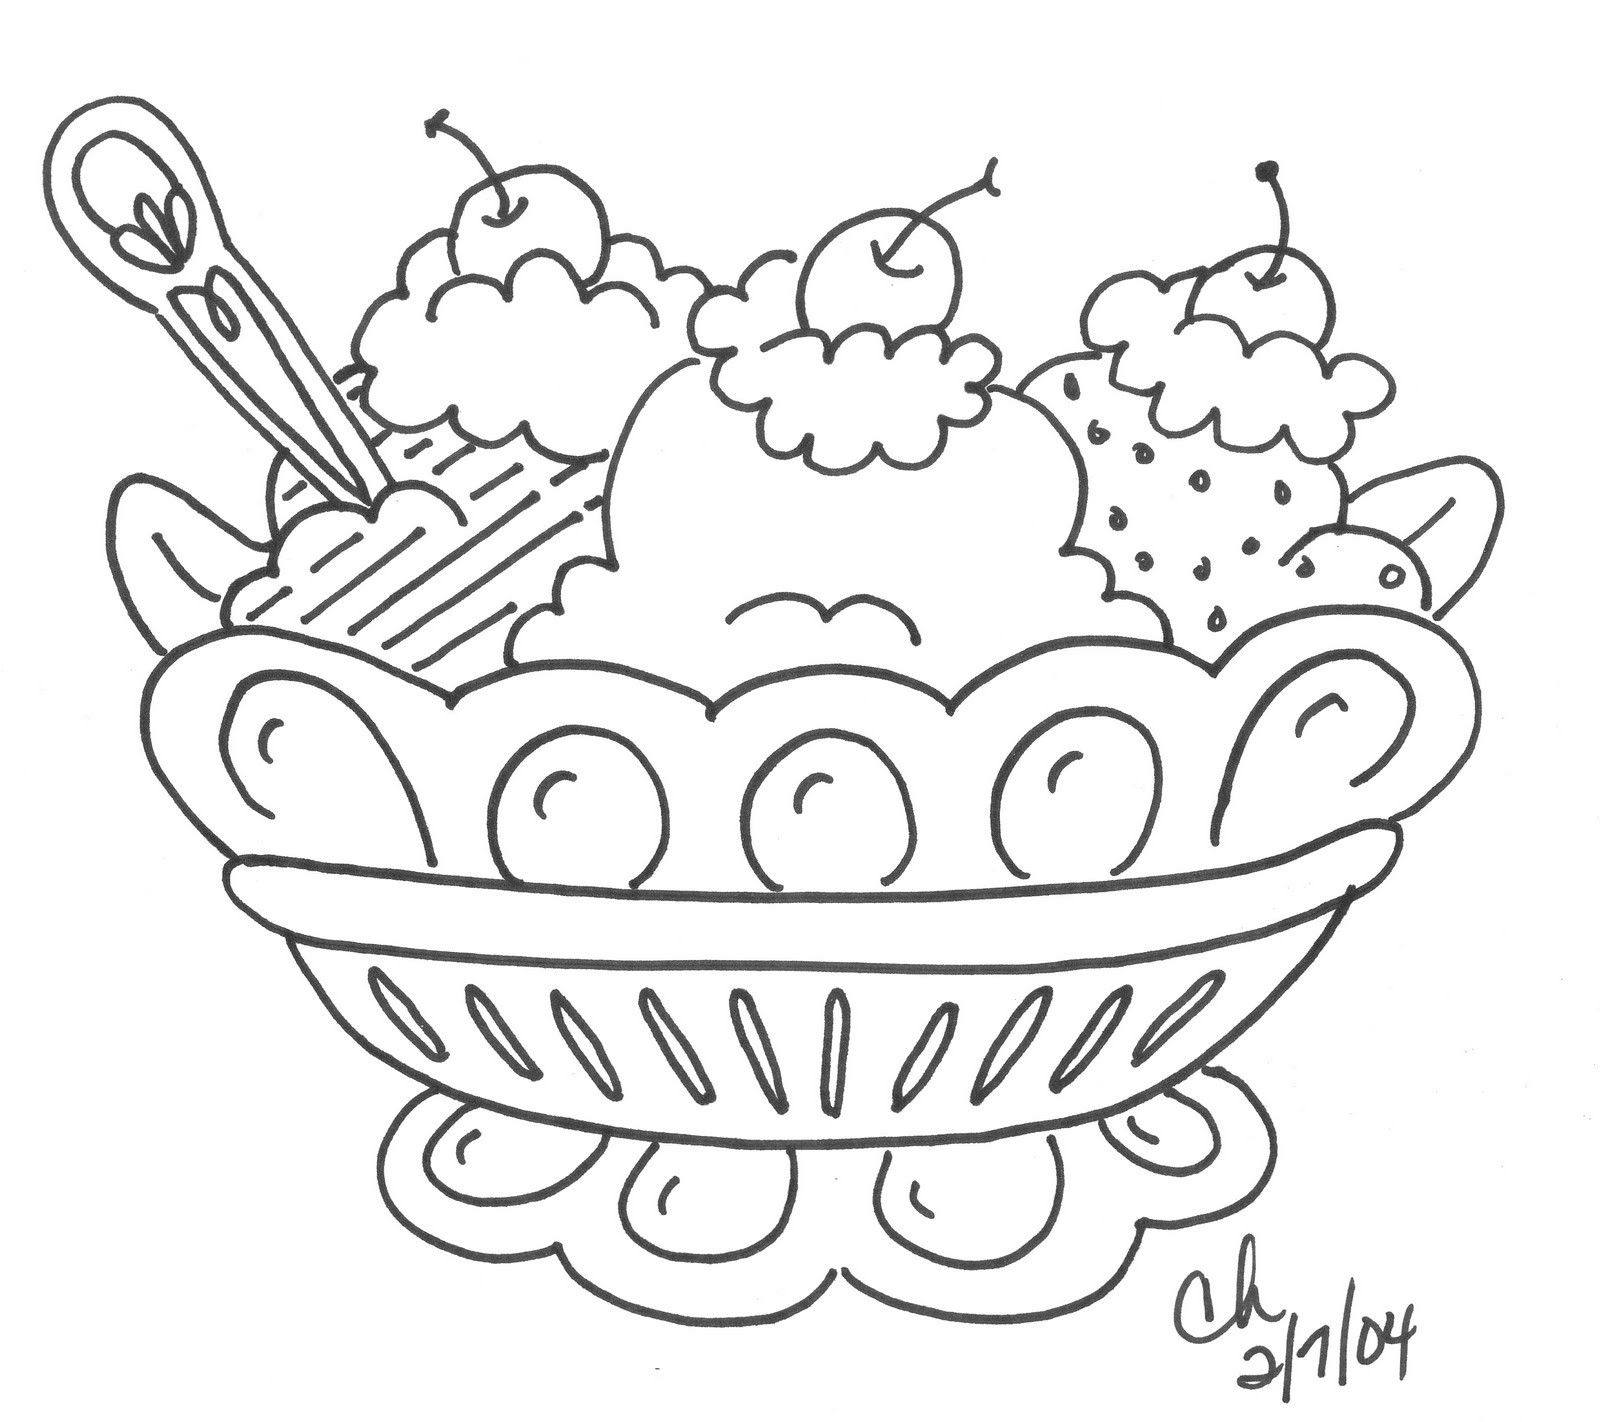 1600x1422 Coloring Pages Ice Cream Scoops New Printable Ice Cream Scoop